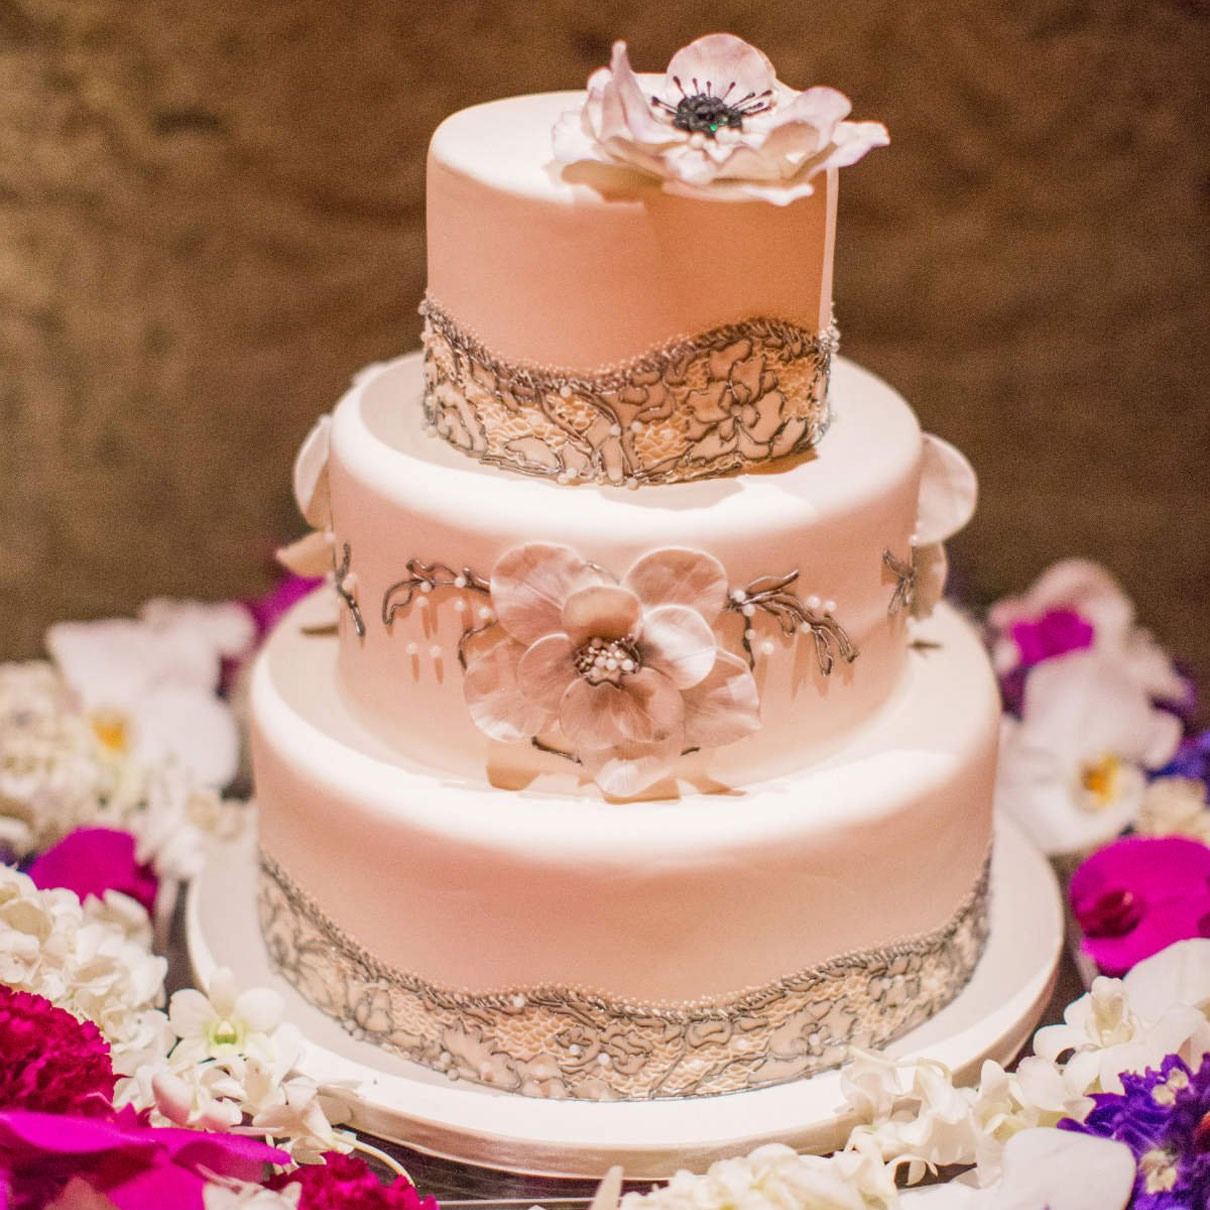 Wedding Cake Cost.Wedding Wednesdays Q A How Much Do Wedding Cakes Cost